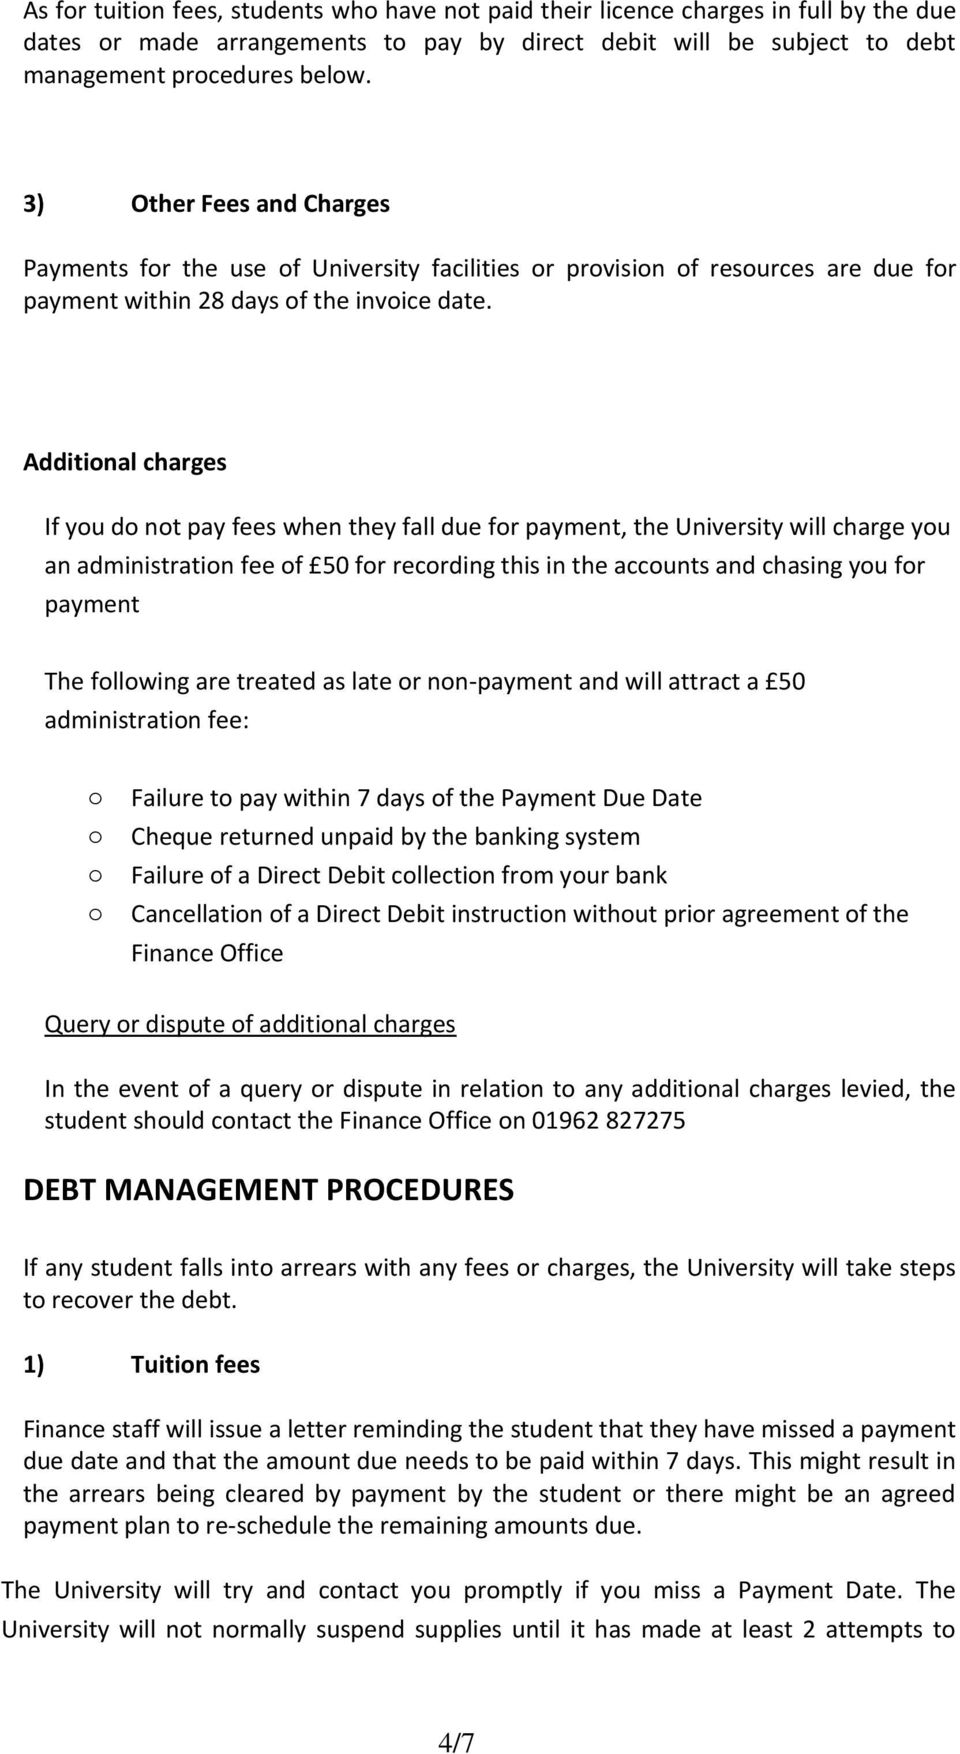 Additinal charges If yu d nt pay fees when they fall due fr payment, the University will charge yu an administratin fee f 50 fr recrding this in the accunts and chasing yu fr payment The fllwing are